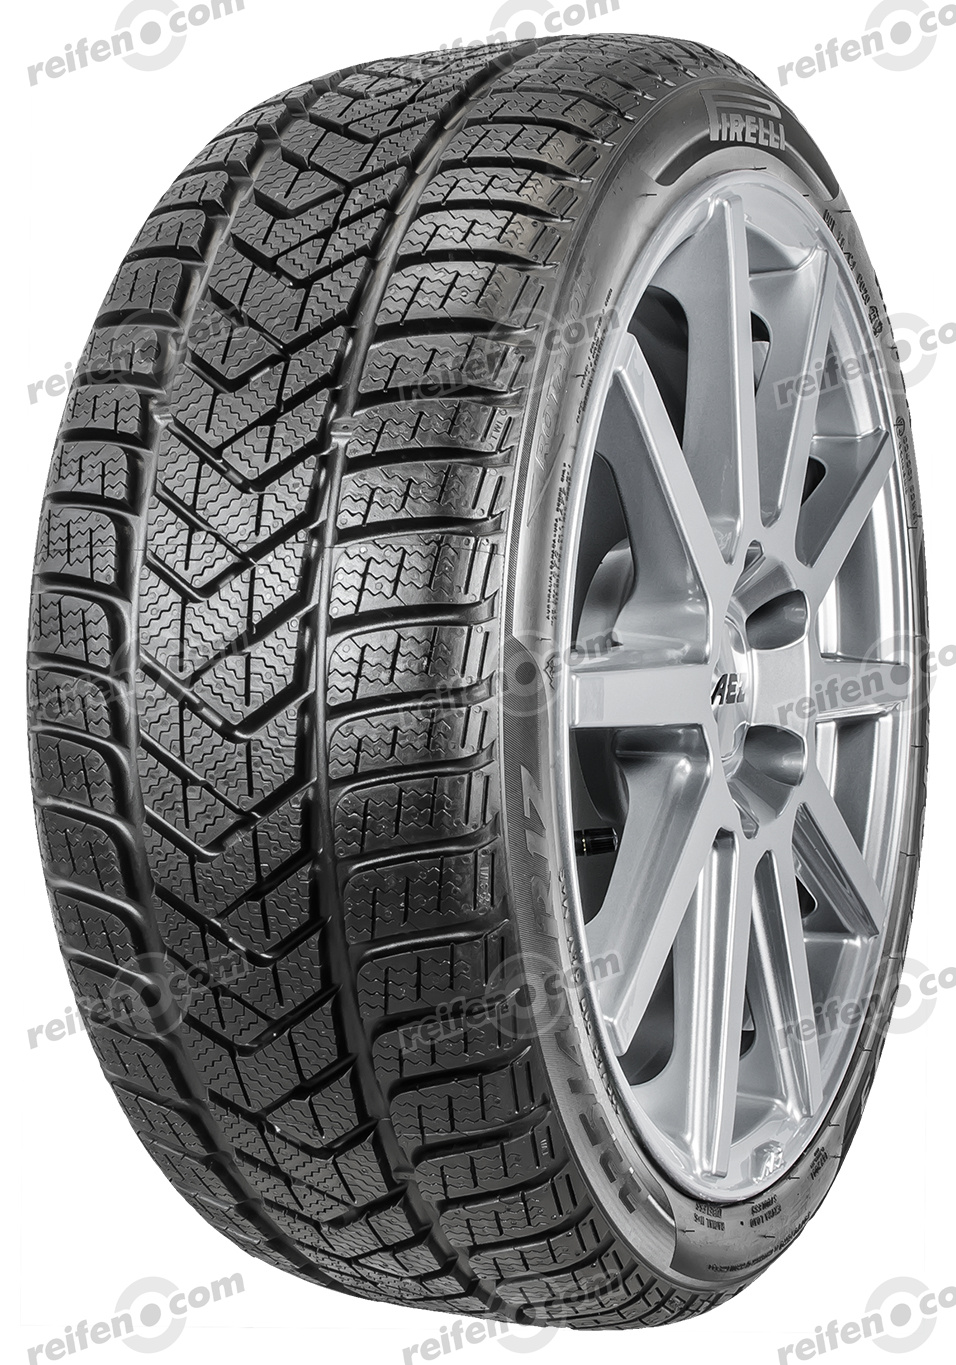 275/40 R19 101W Winter Sottozero 3 MGT  Winter Sottozero 3 MGT